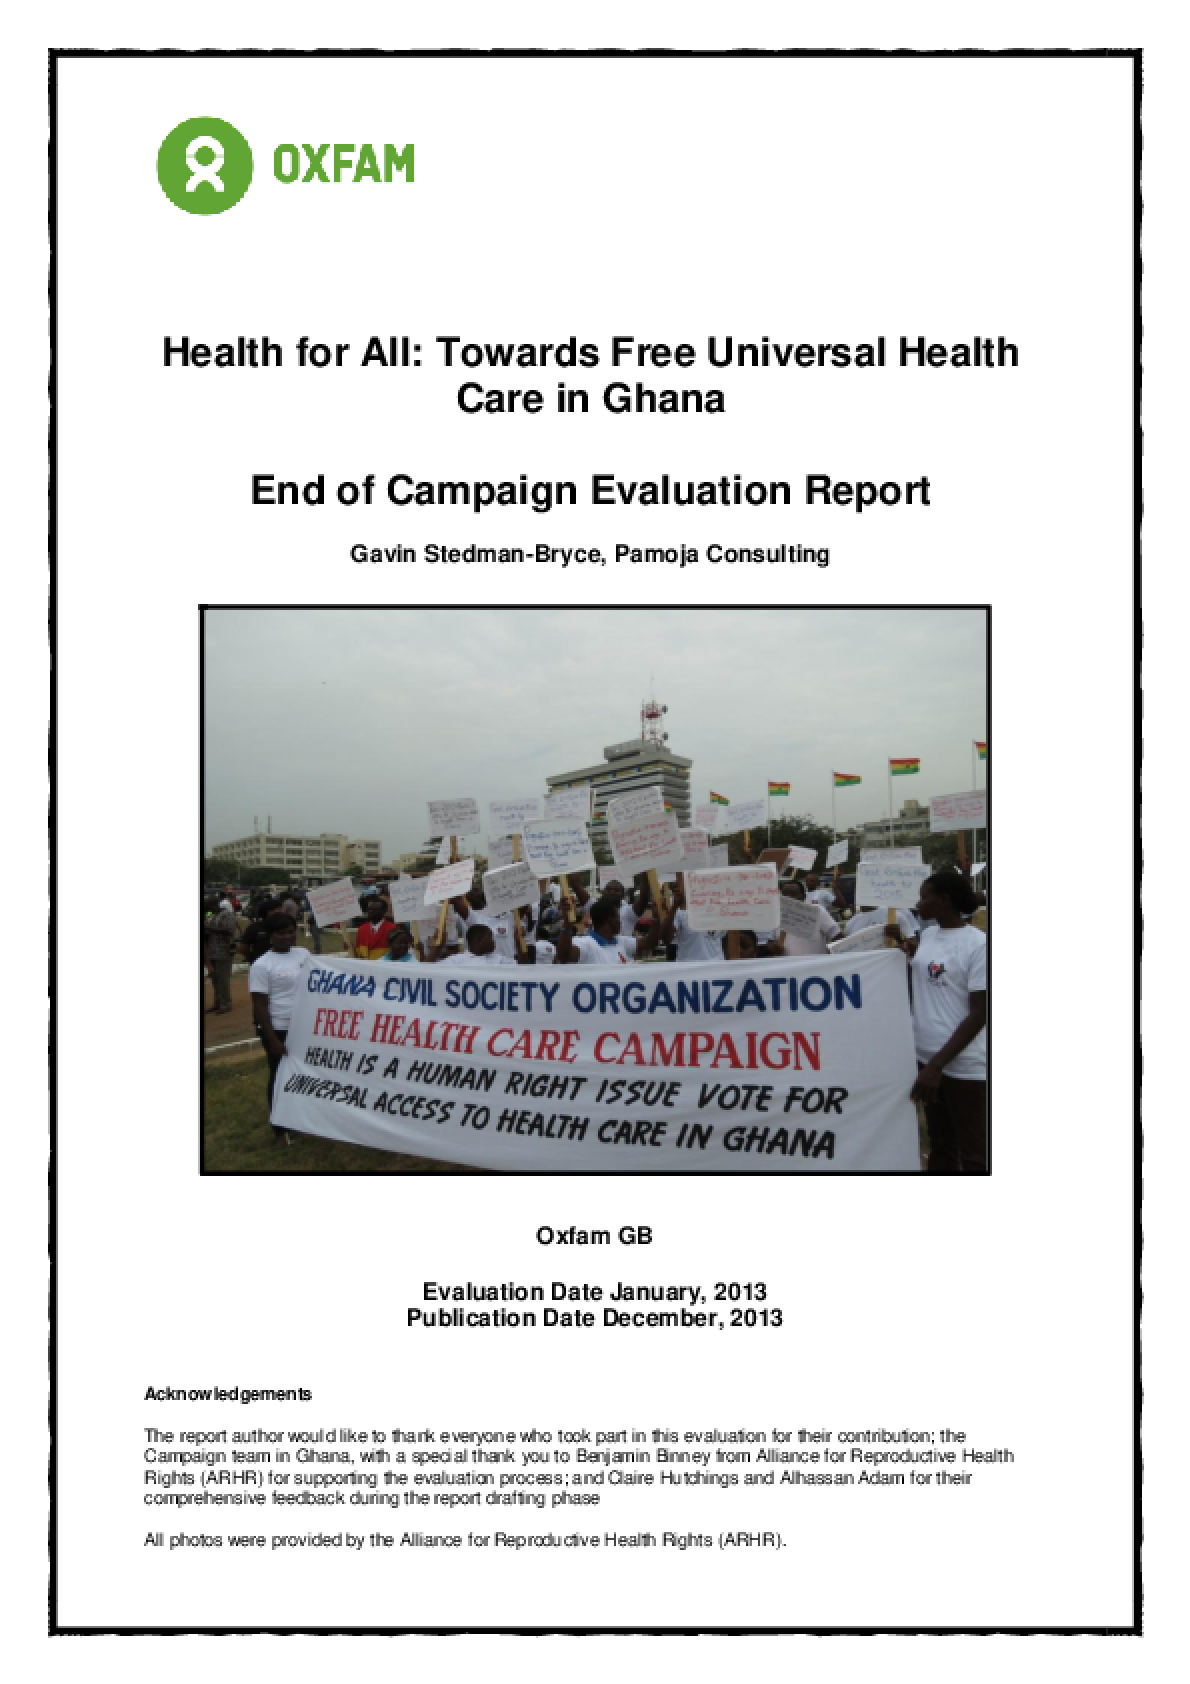 Effectiveness Review: Health for All: Towards Free Universal Health Care in Ghana